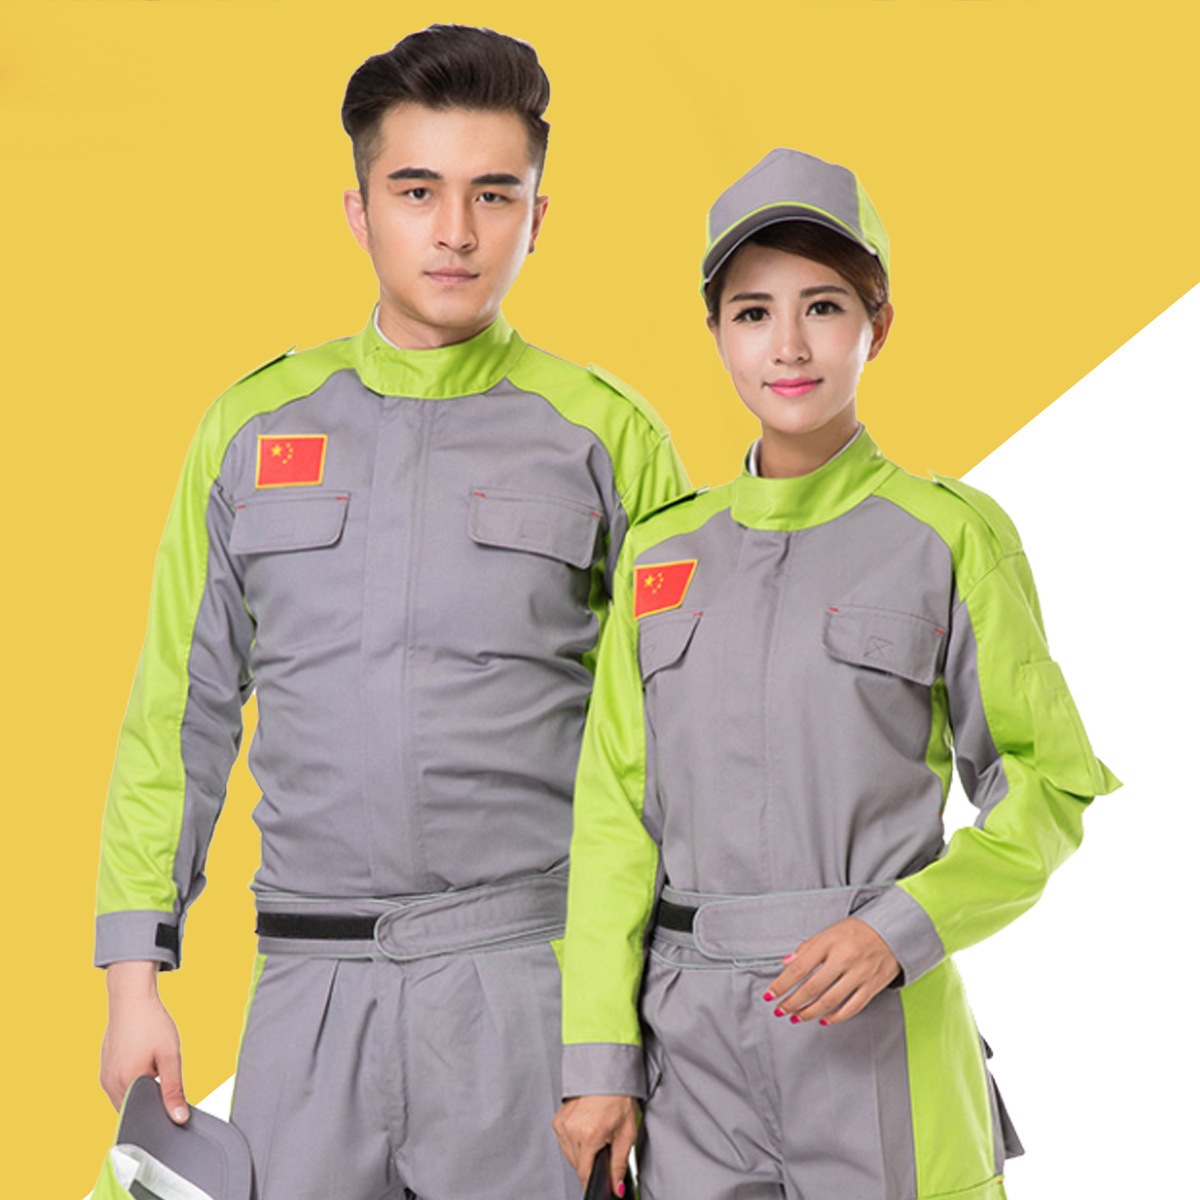 Autumn and winter driving school uniform factory workshop staff clothes Porter electrician welder clothing machinery